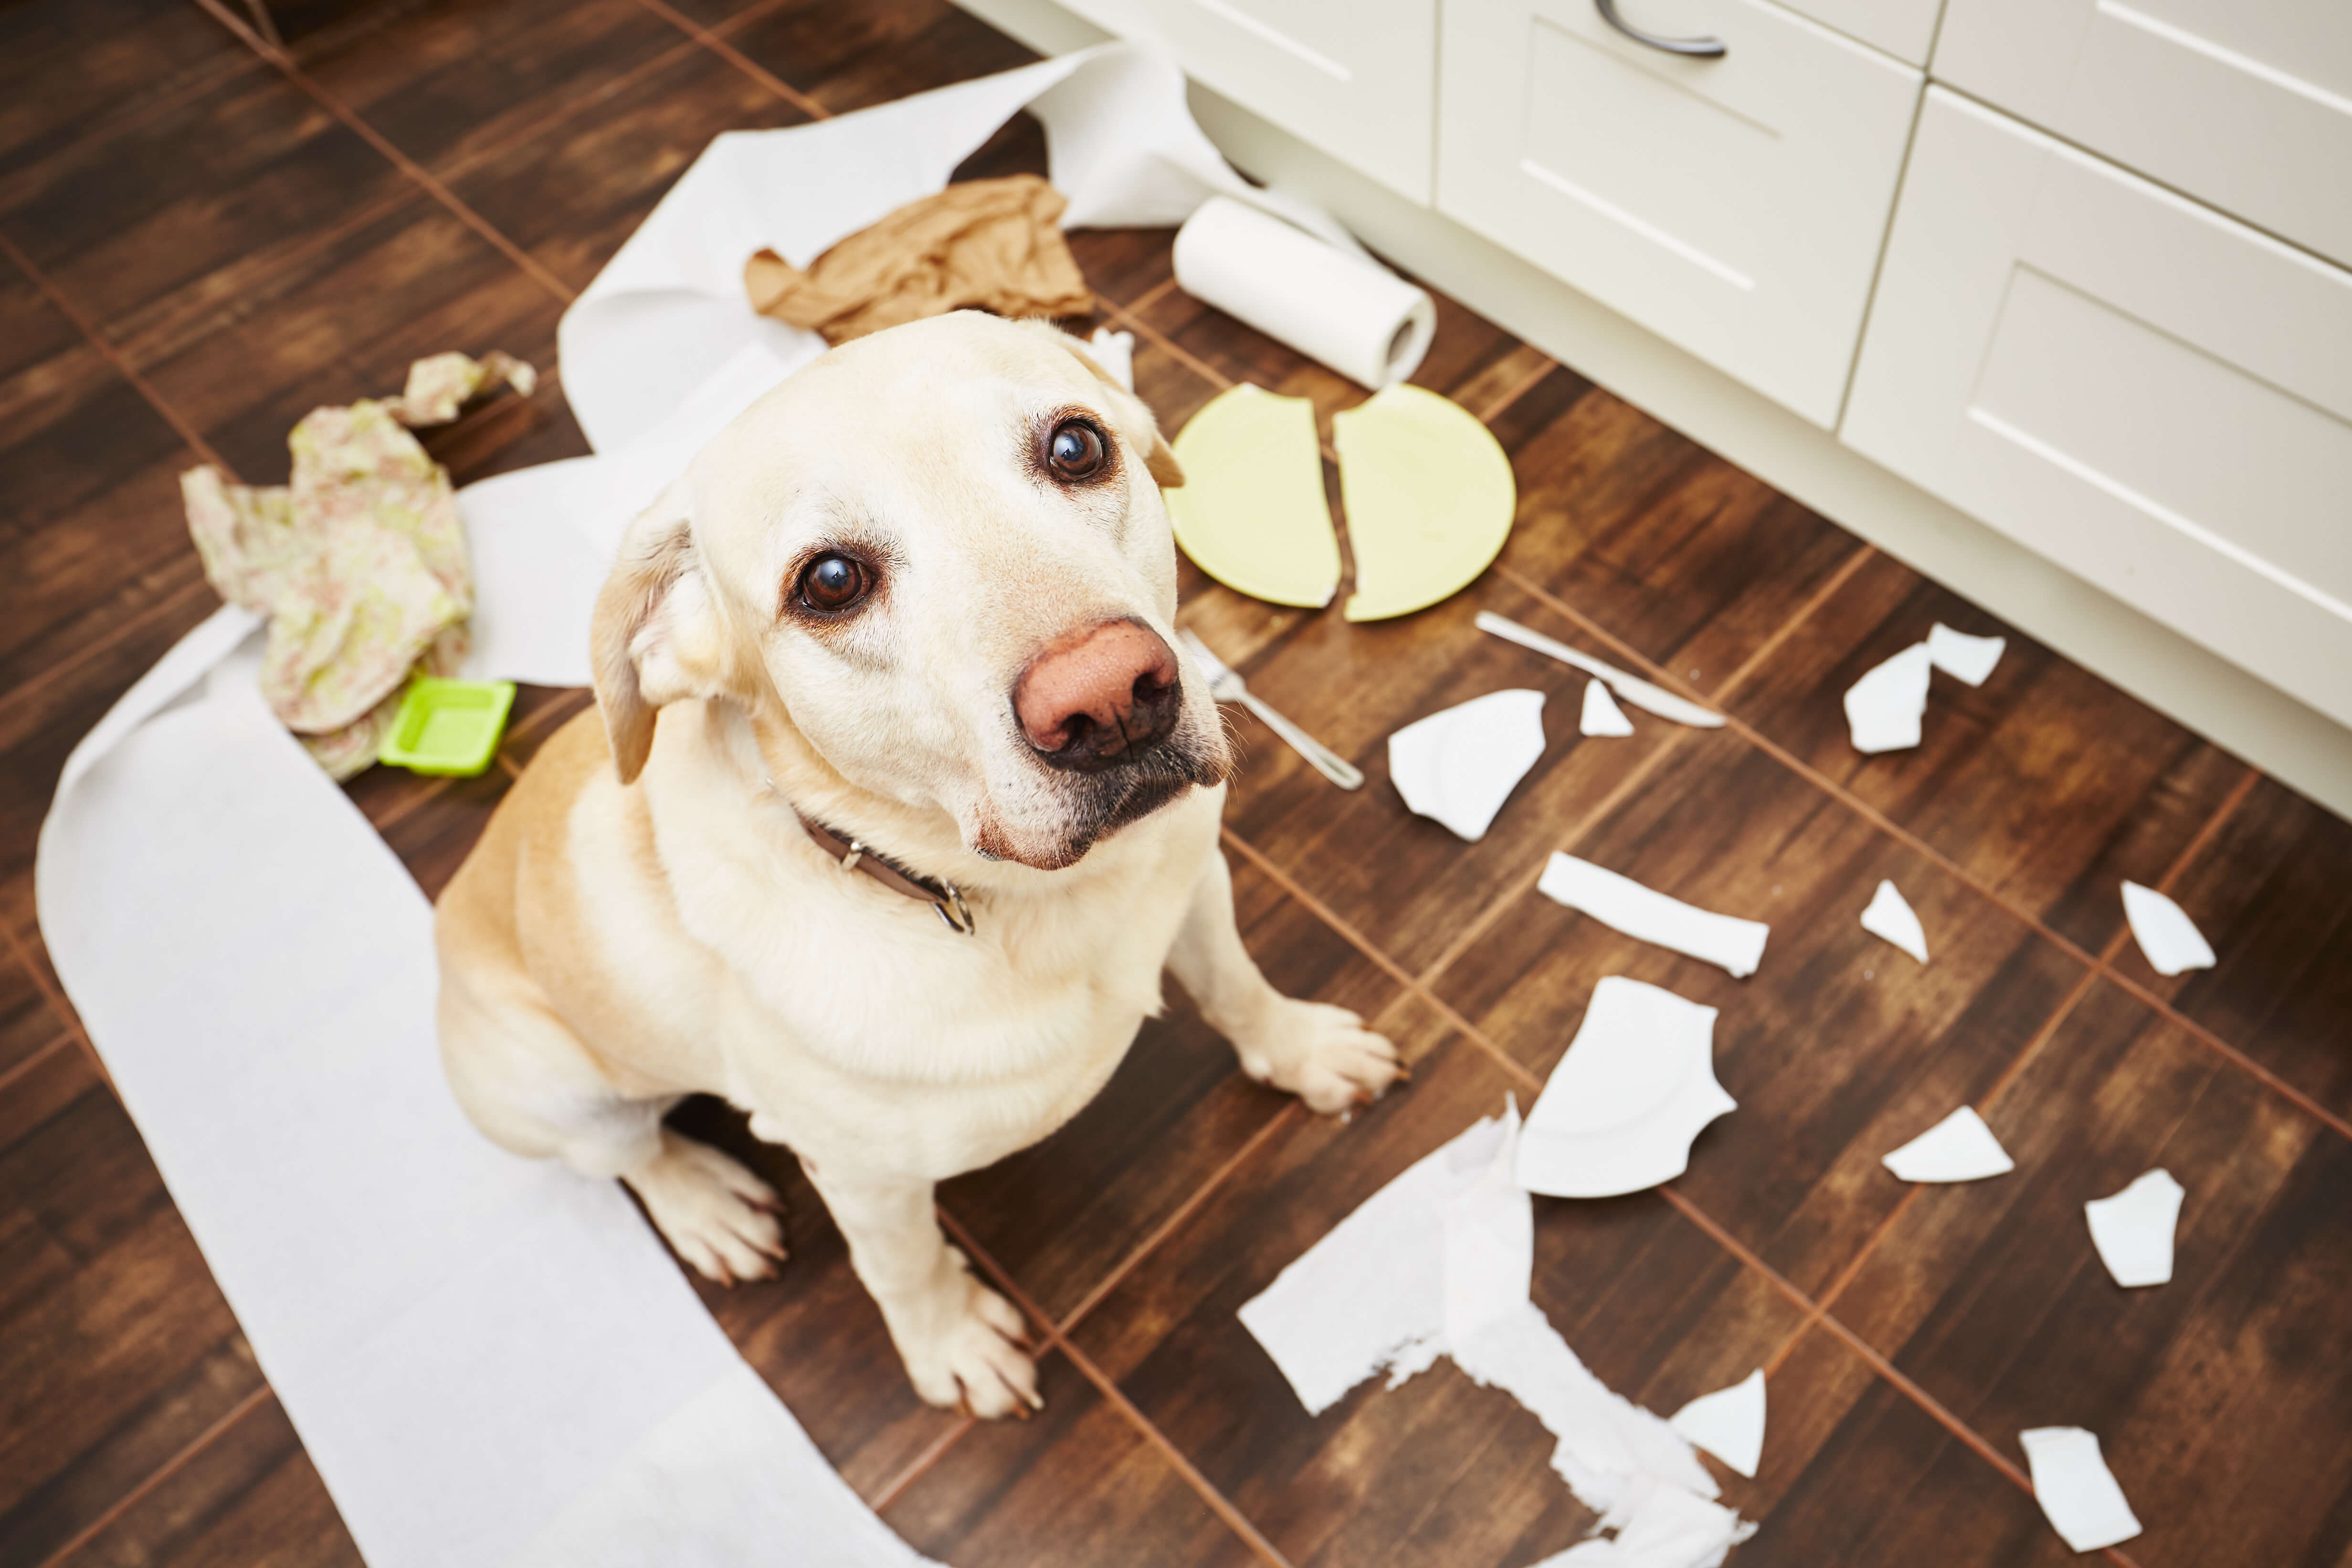 Dogs can present us with all types of unwanted behaviors.